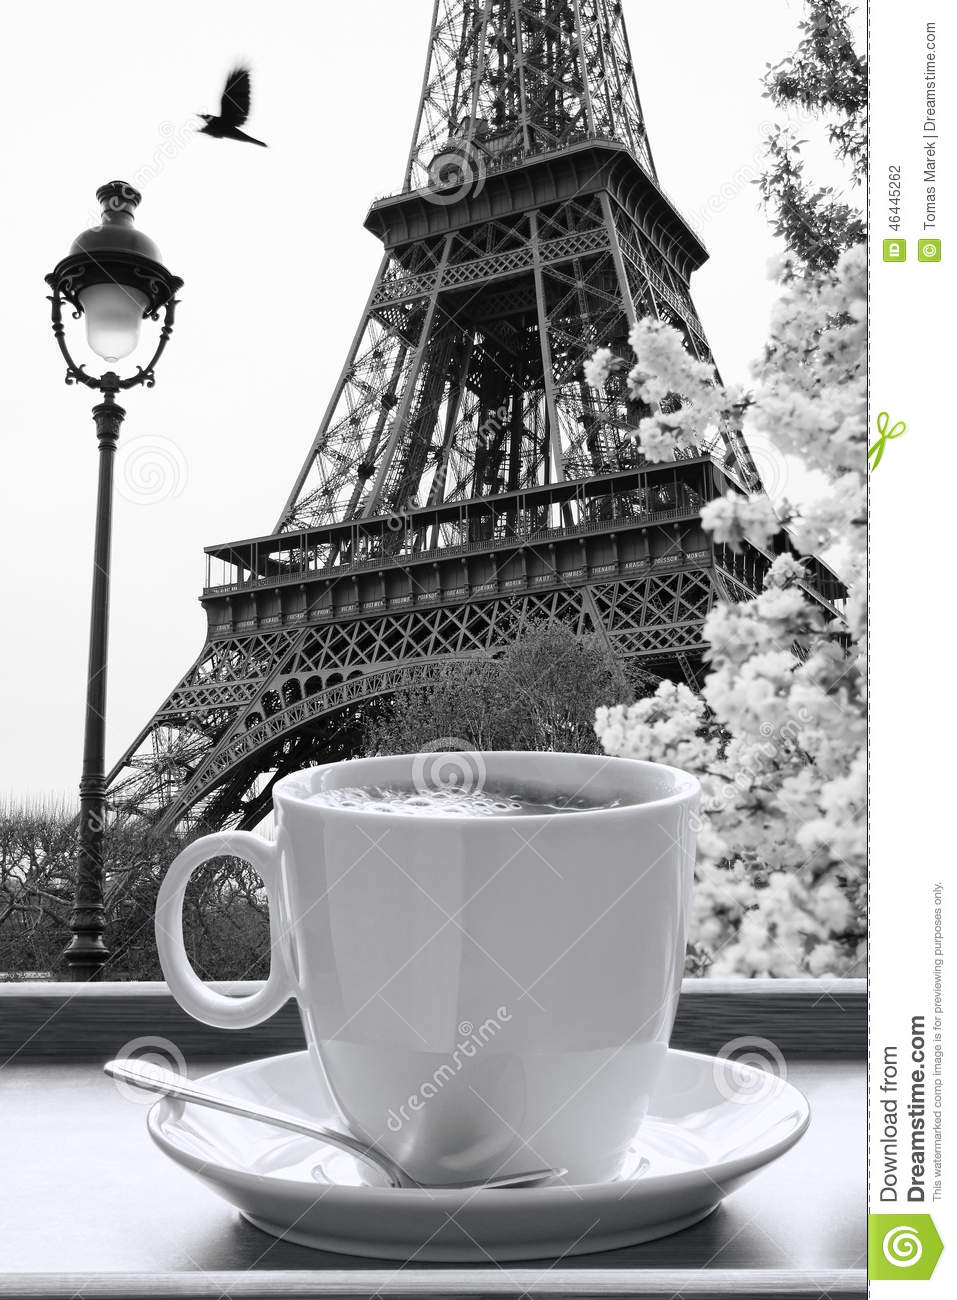 Outdoor cafe in paris with tower in background - Black Coffee Cup Eiffel Famous France Paris Style Tower